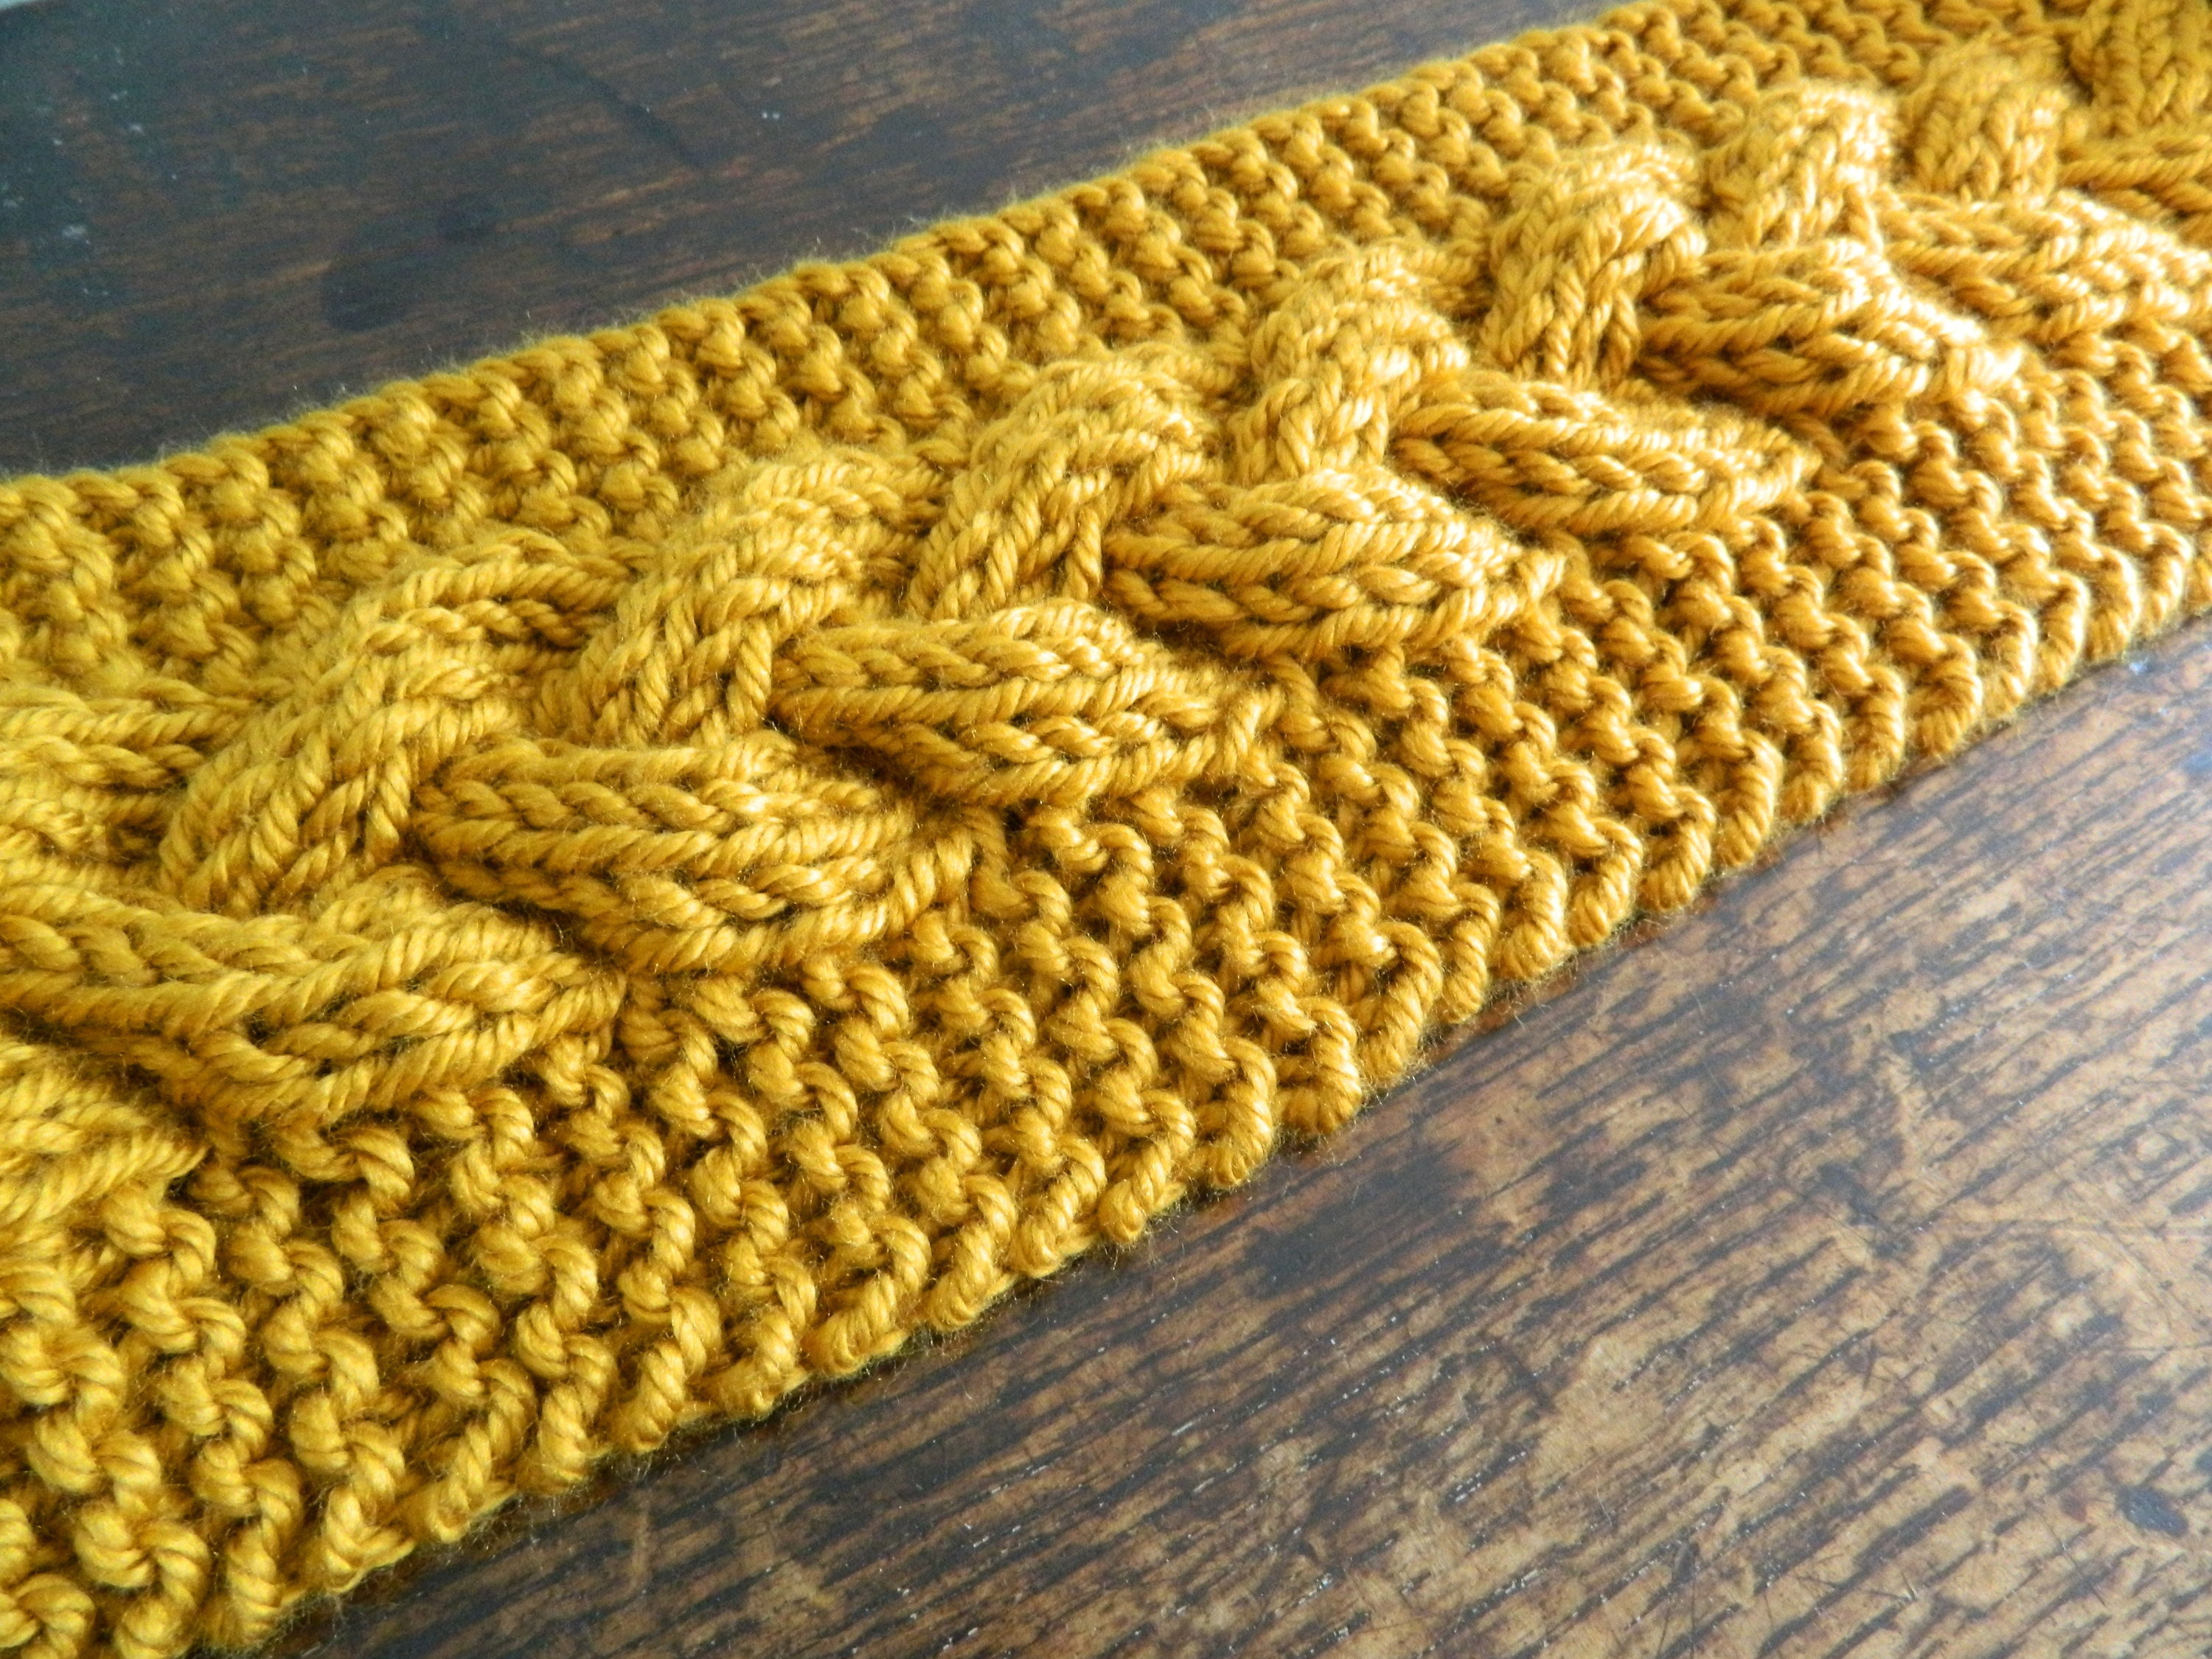 Hand Knit Scarf Pattern Super Chunky Plaited Cable Knit Scarf Pattern Cable Knit Scarf Knitting Pattern How To Knit Tutorial Hand Knitted Scarf Pattern